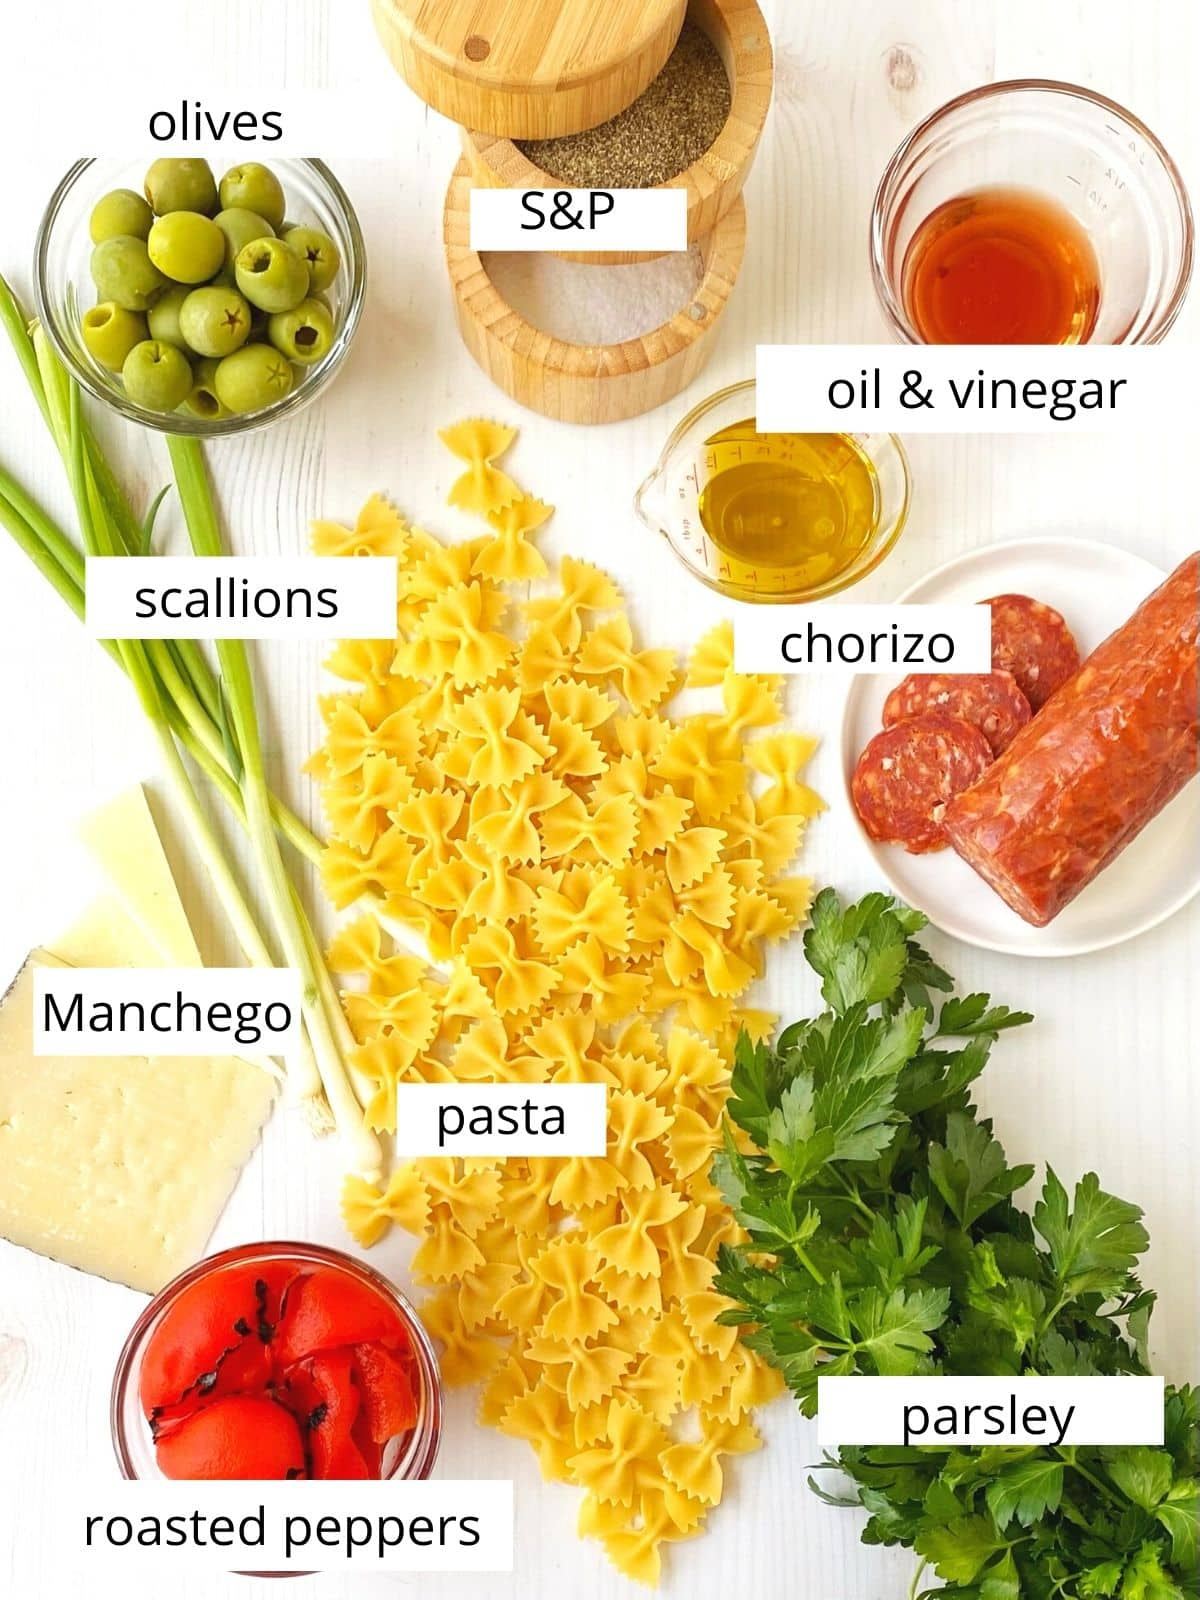 array of ingredients - pasta, chorizo, cheese, olives, parsley, peppers, scallions, oil, and vinegar